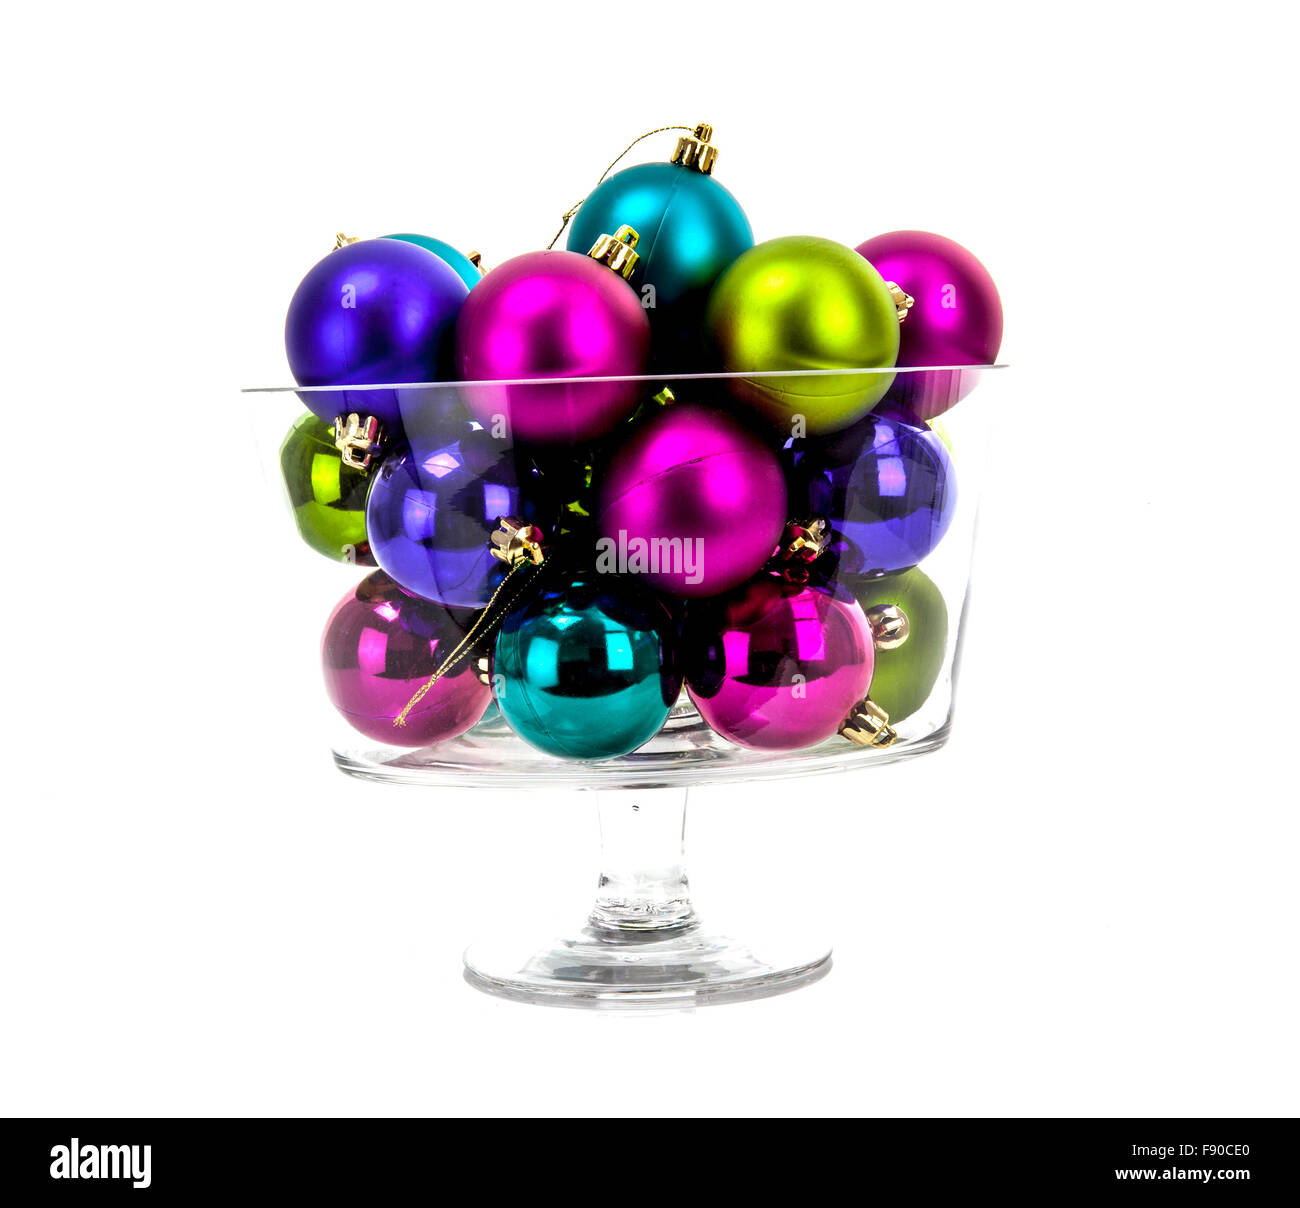 Multi-colored Christmas balls in a glass isolated on a white background - Stock Image